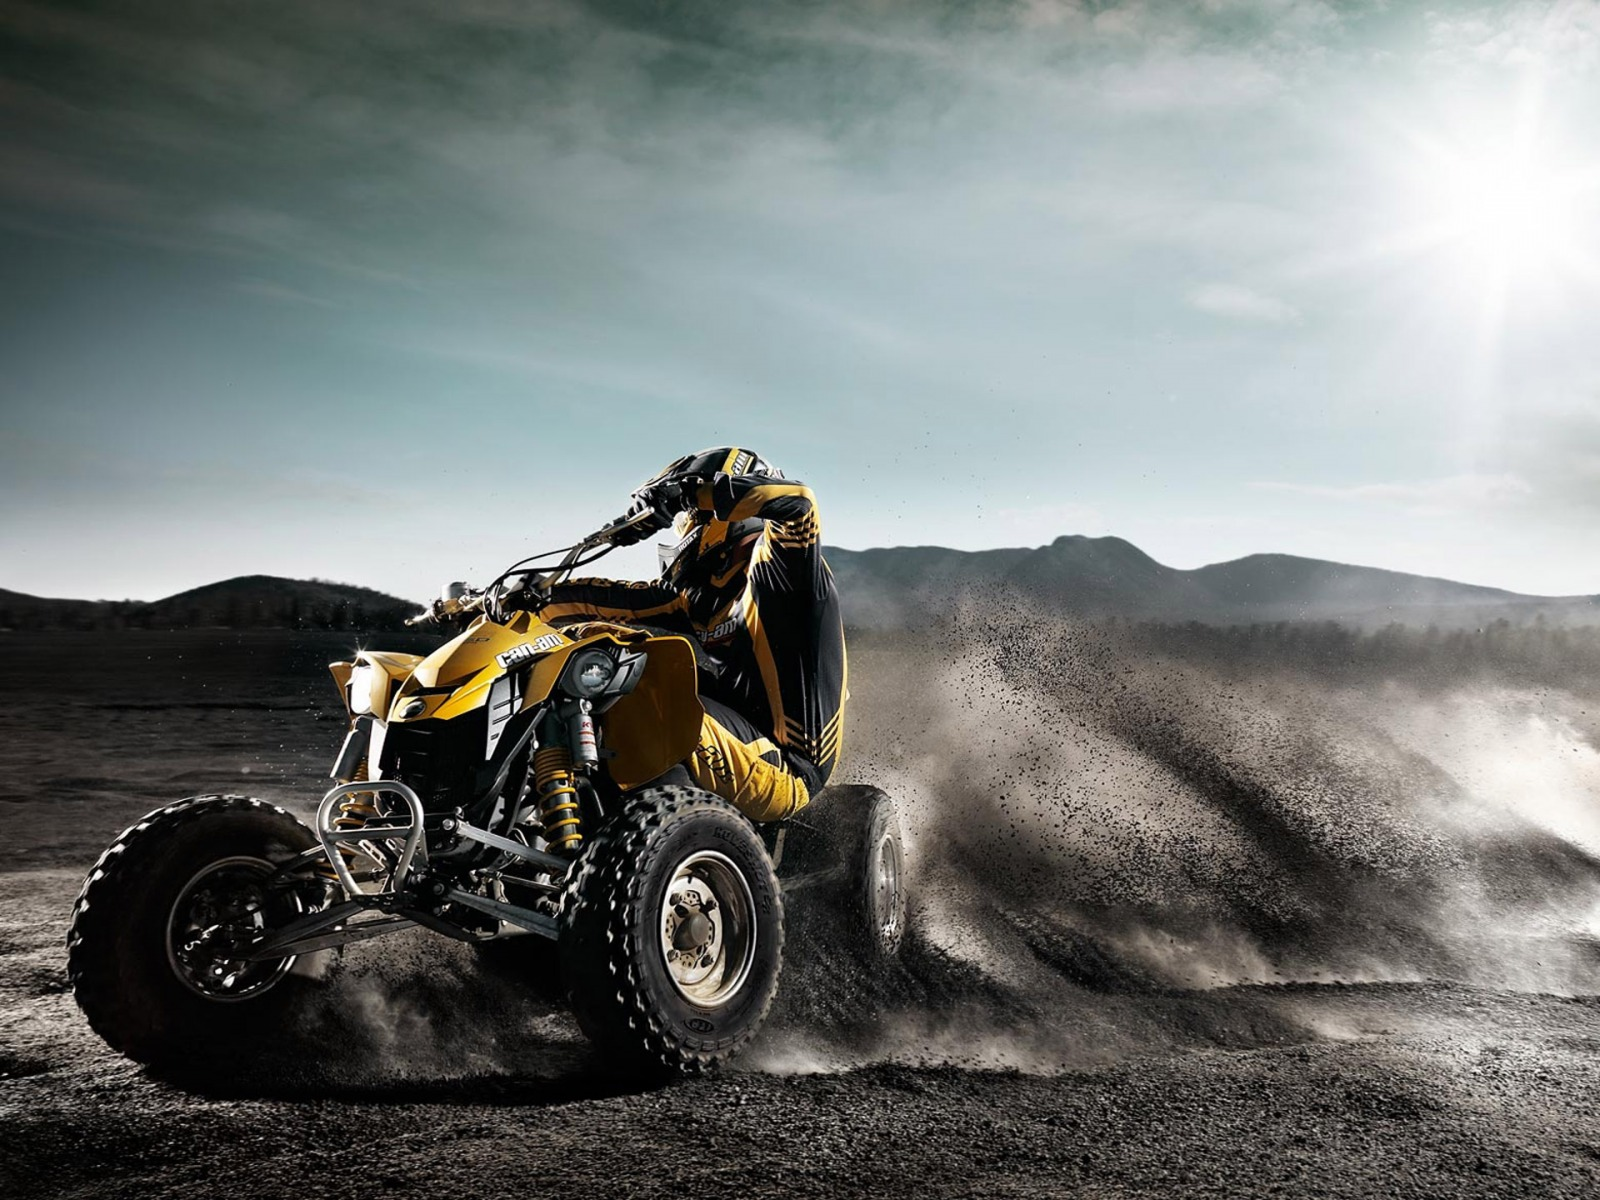 Atv Wallpaper Other Cars Wallpapers In Jpg Format For Free